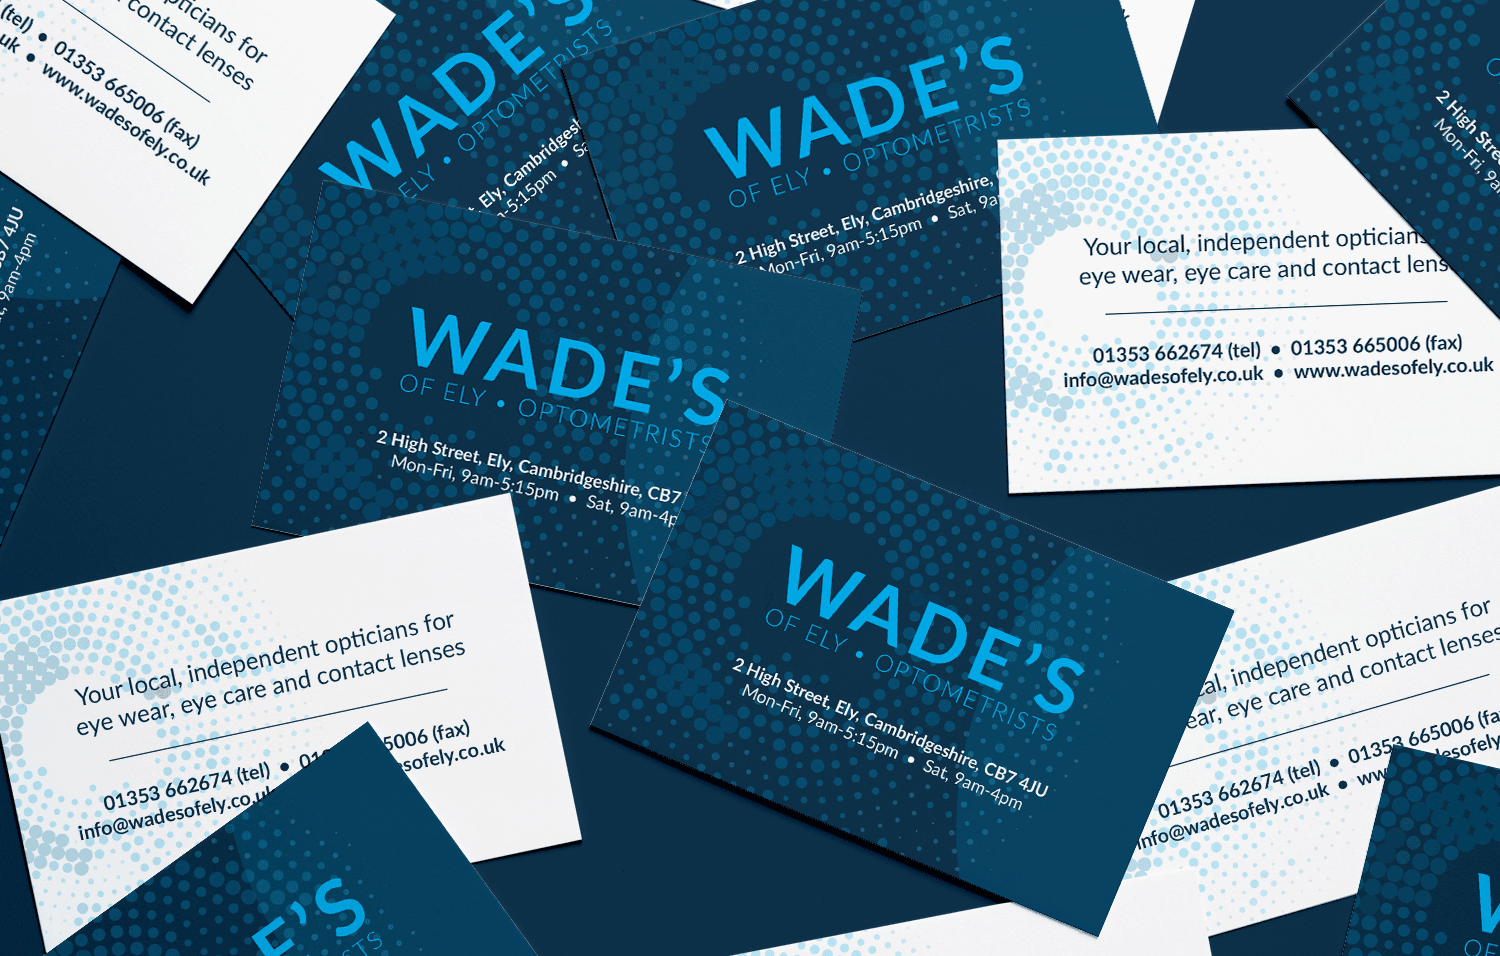 Wades of Ely business cards